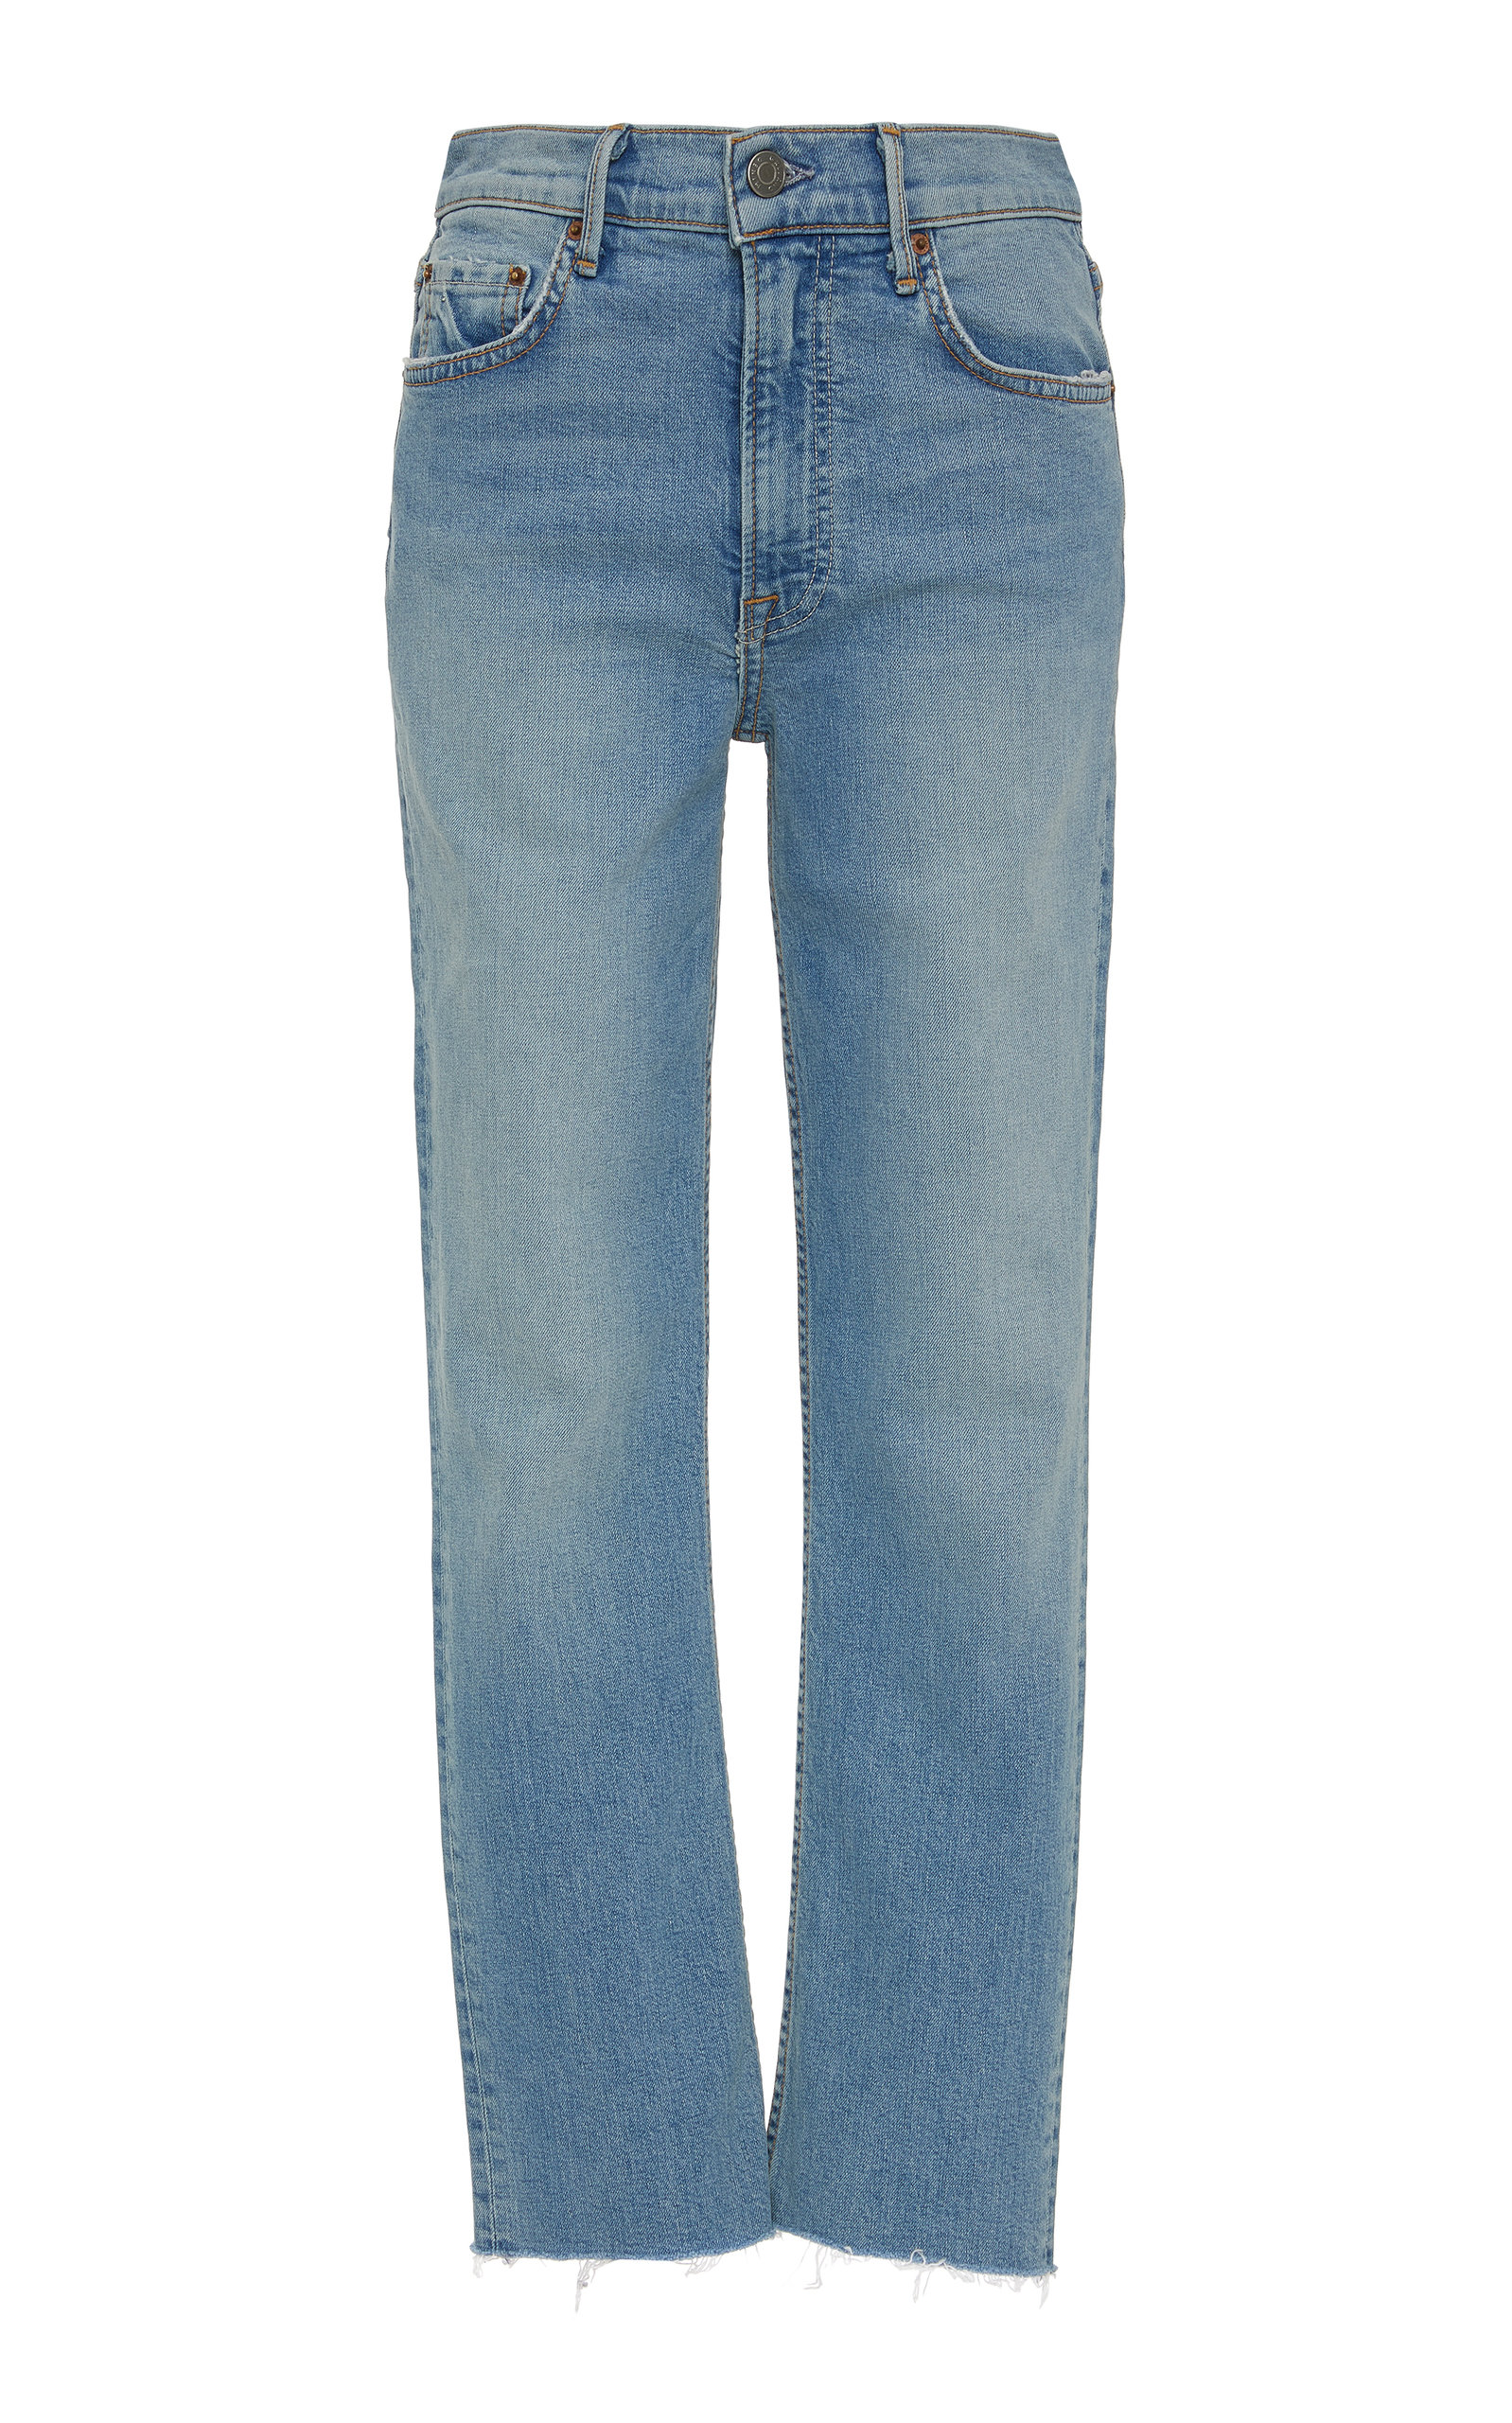 Reed Cropped High Rise Skinny Jeans by Grlfrnd Denim